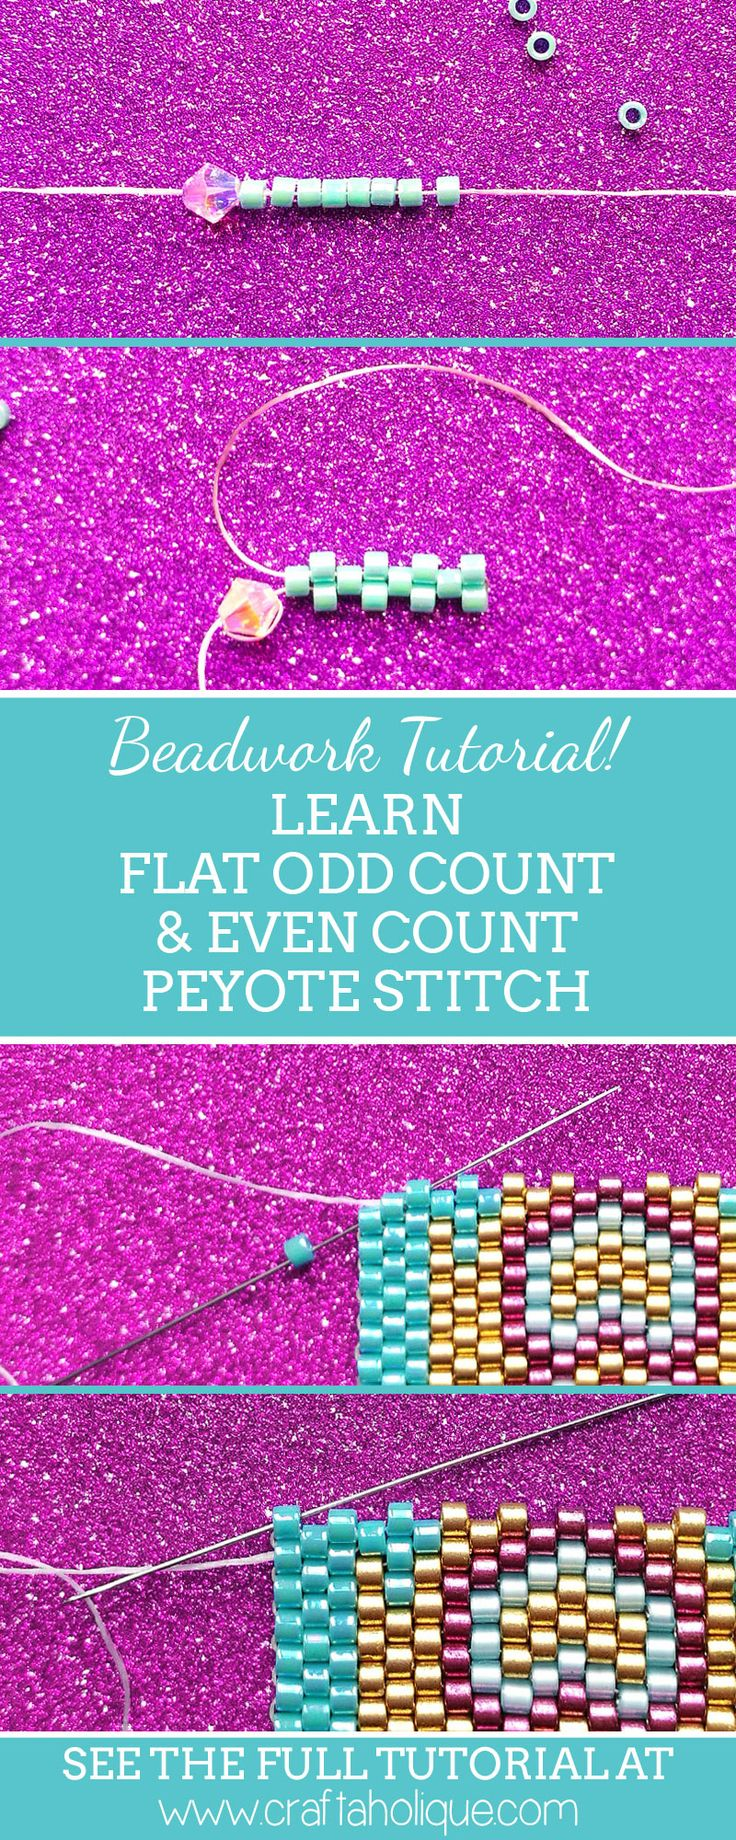 The Best Beading Books for Beginner and Intermed ...